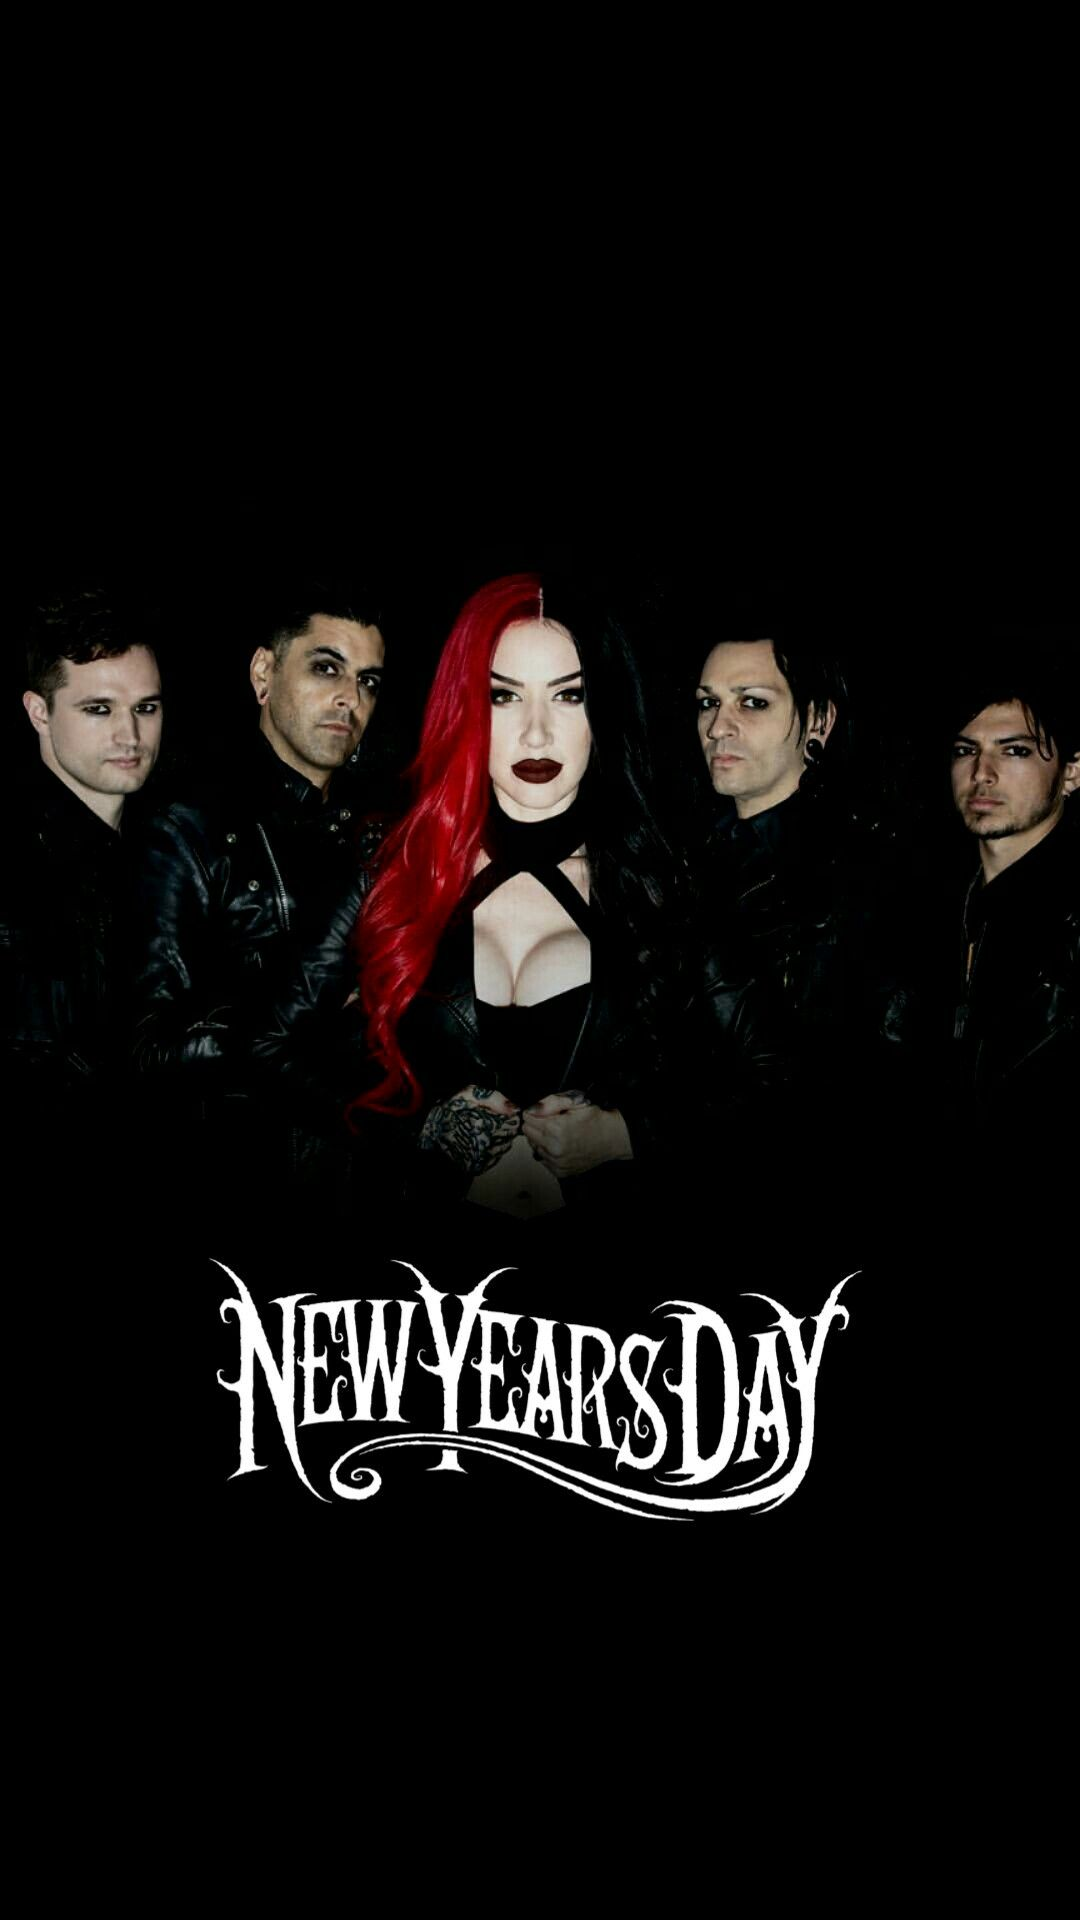 New Years Day Wallpaper For Phone New Years Day Band Ashley Costello Alternative Music